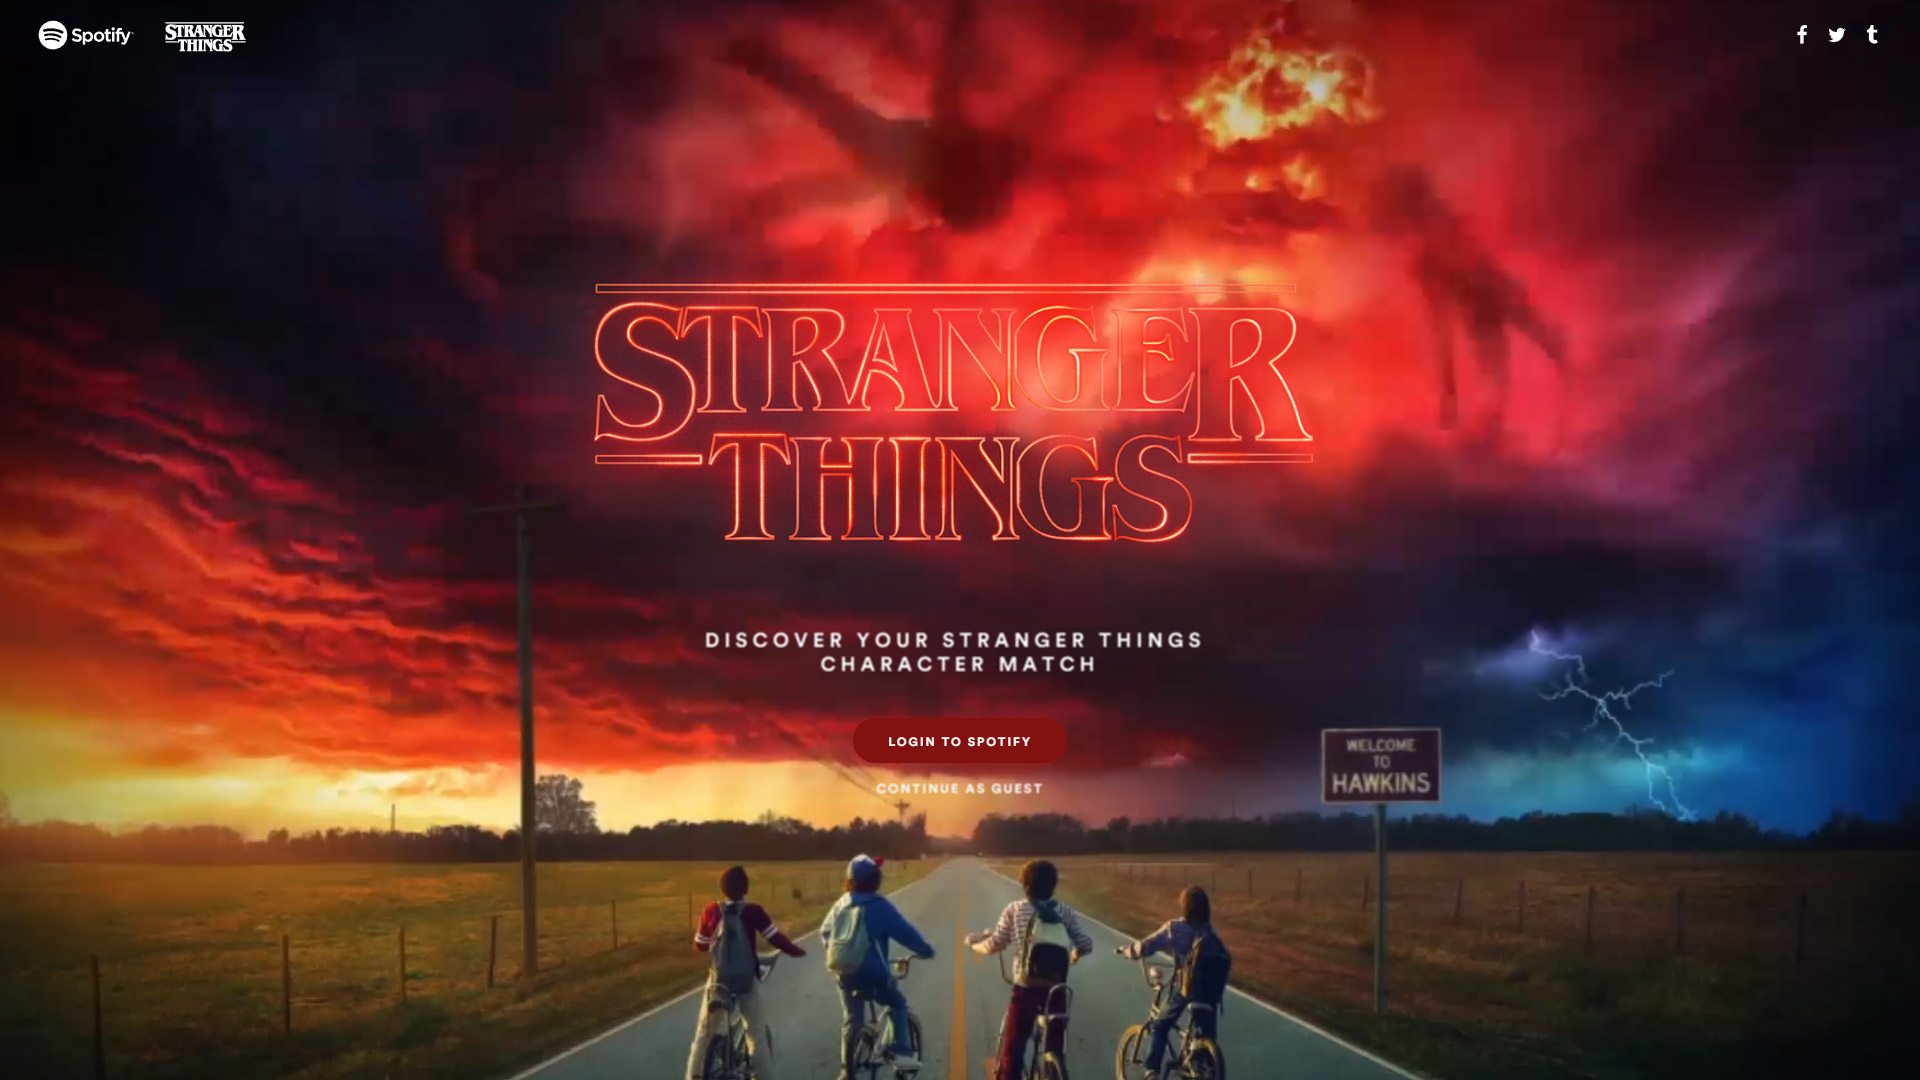 Geek Wallpaper Hd Spotify Celebra Stranger Things 2 Con Playlist De Cada